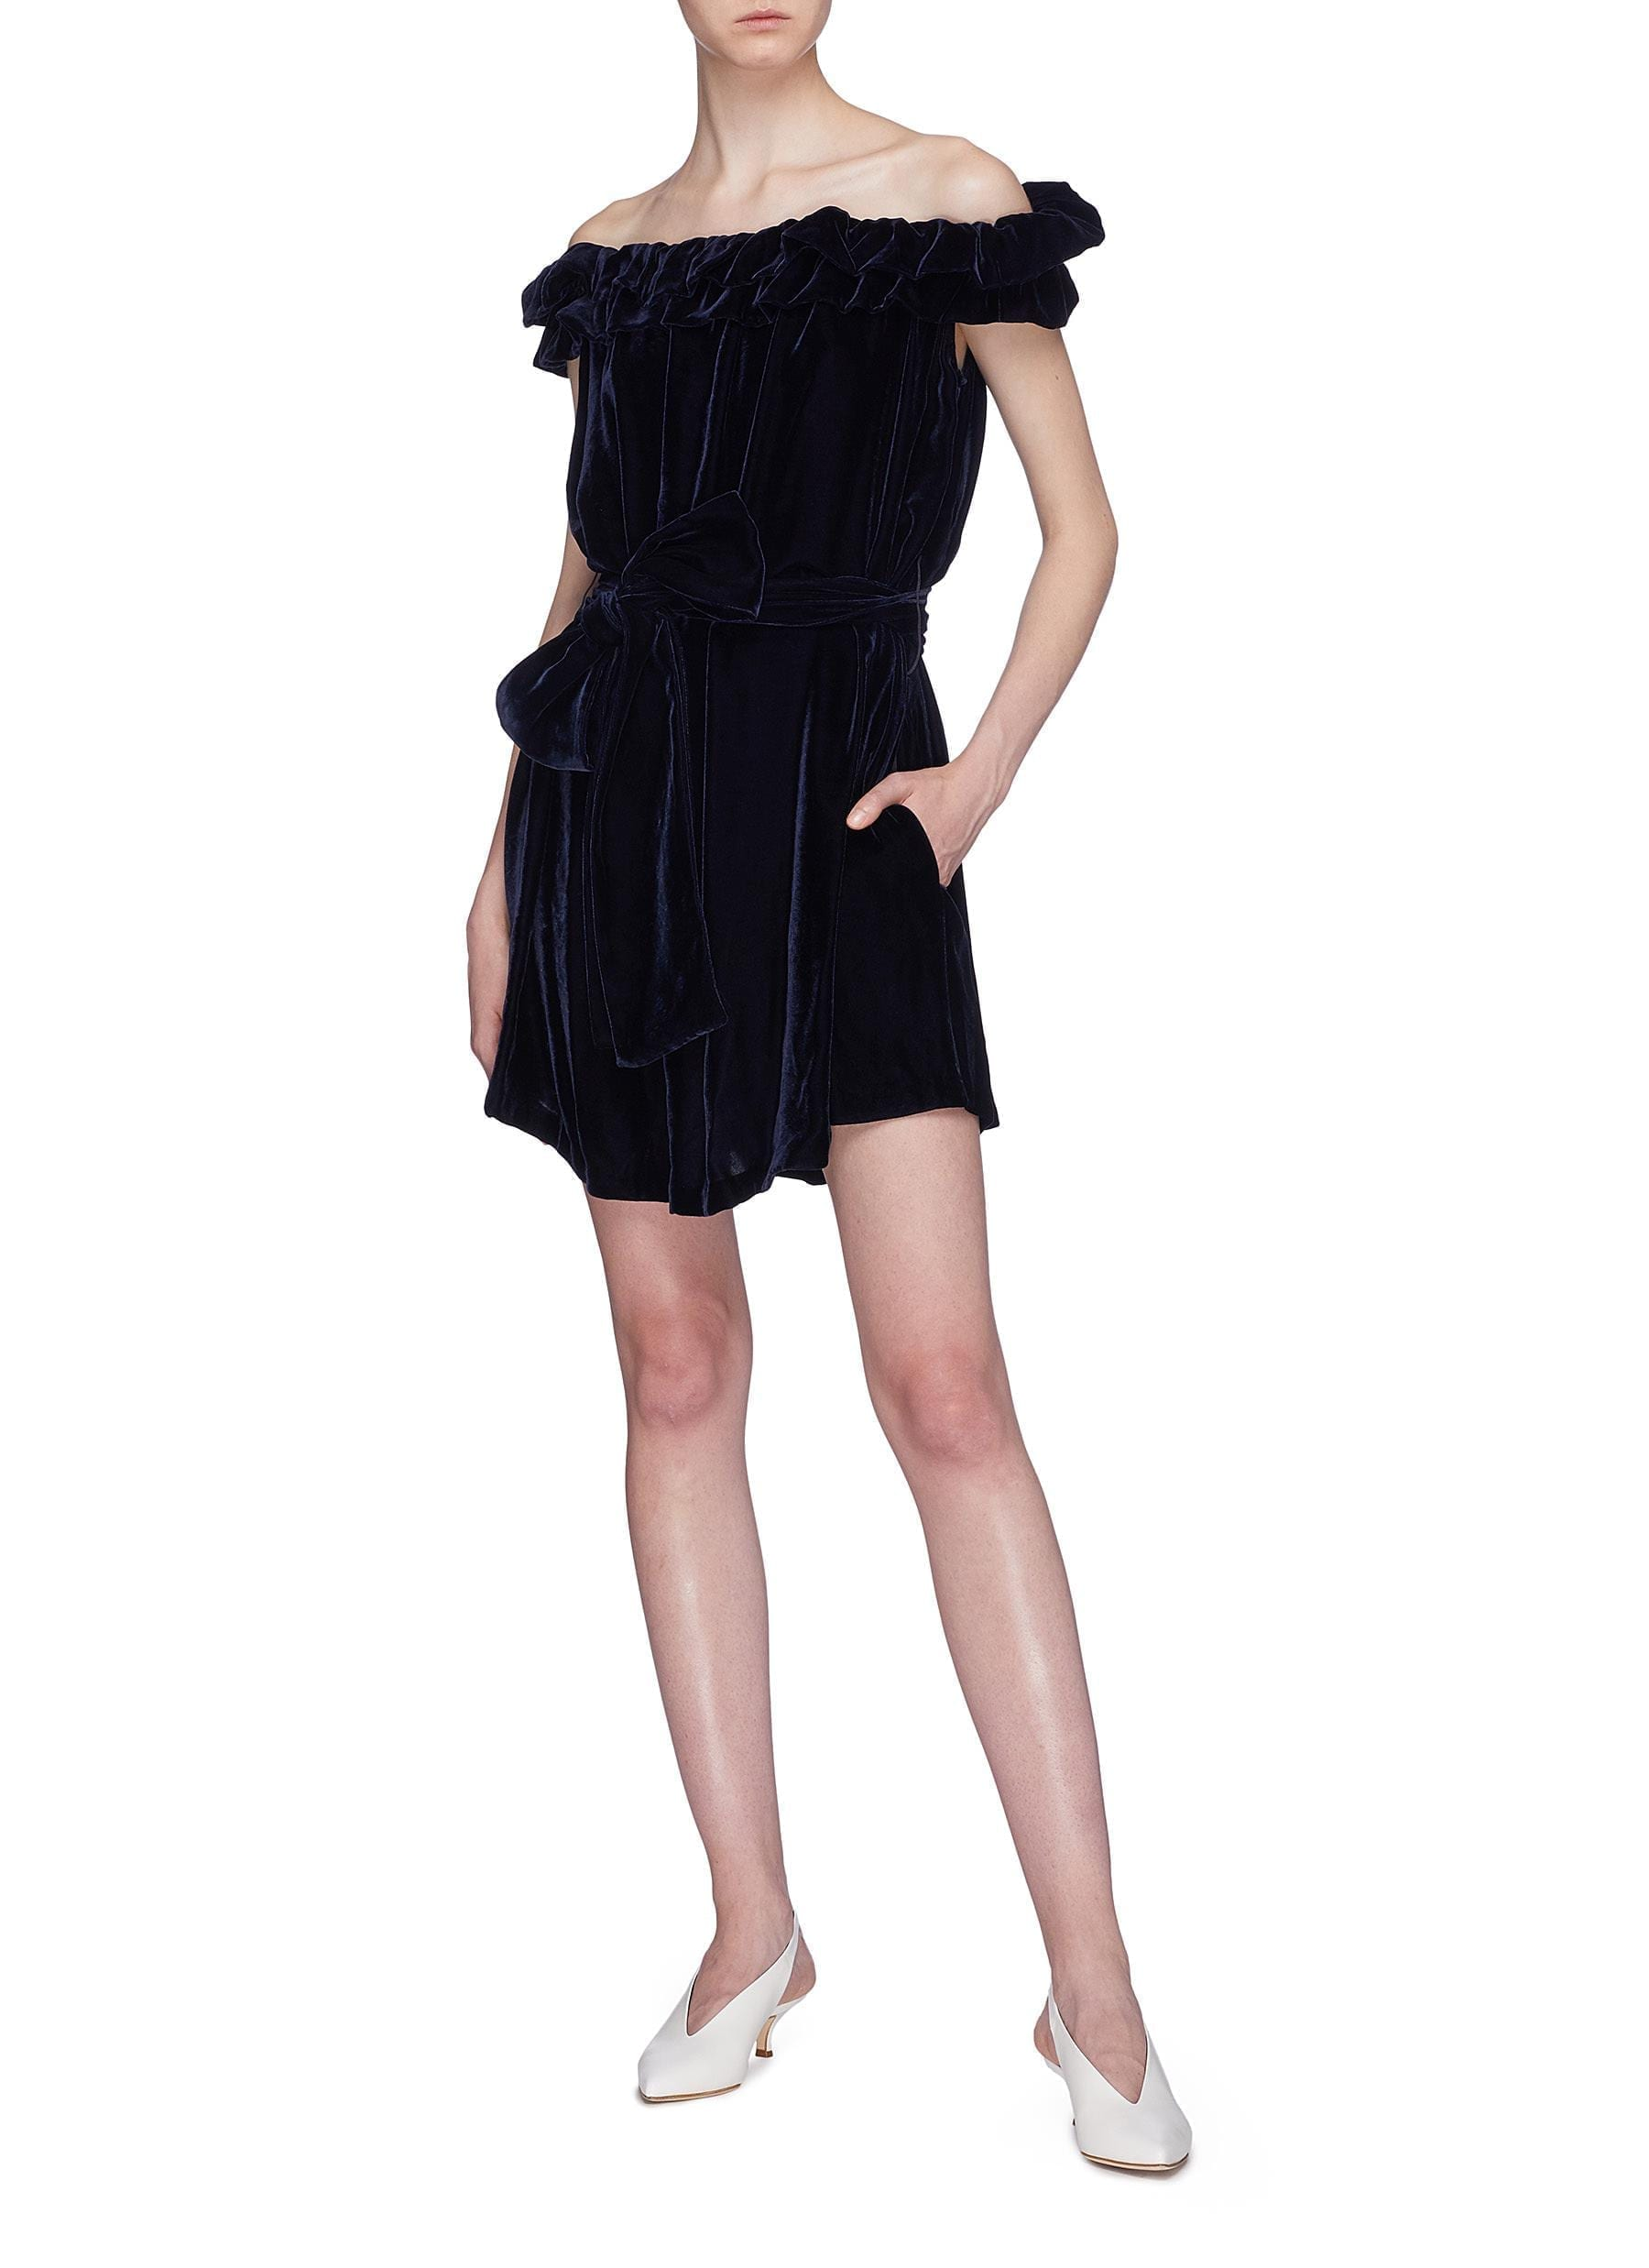 STELLA MCCARTNEY Belted Ruffle Off-shoulder Velvet Navy Dress